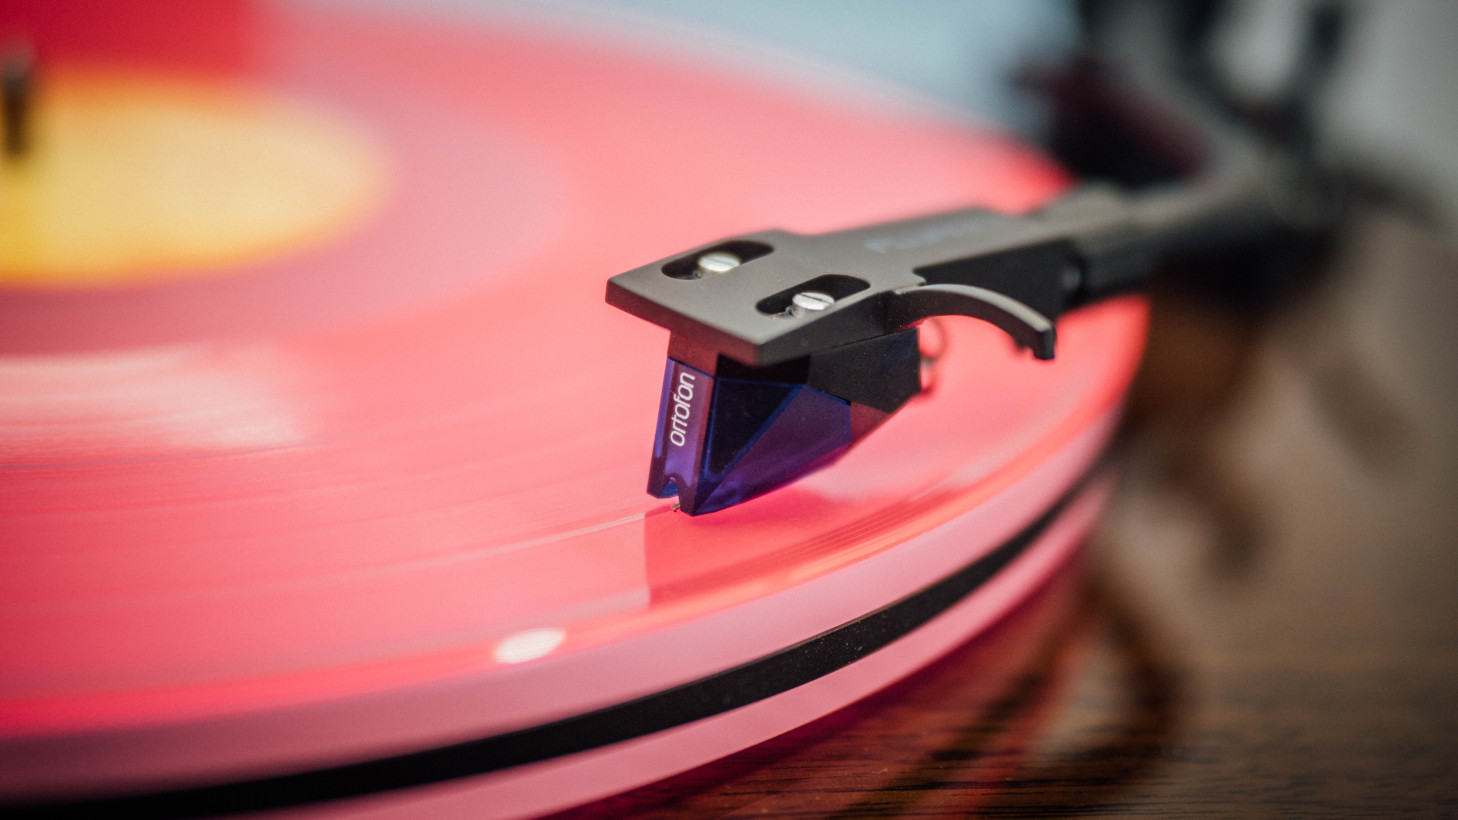 Review Fluance S Rt85 Turntable Helped Me Understand